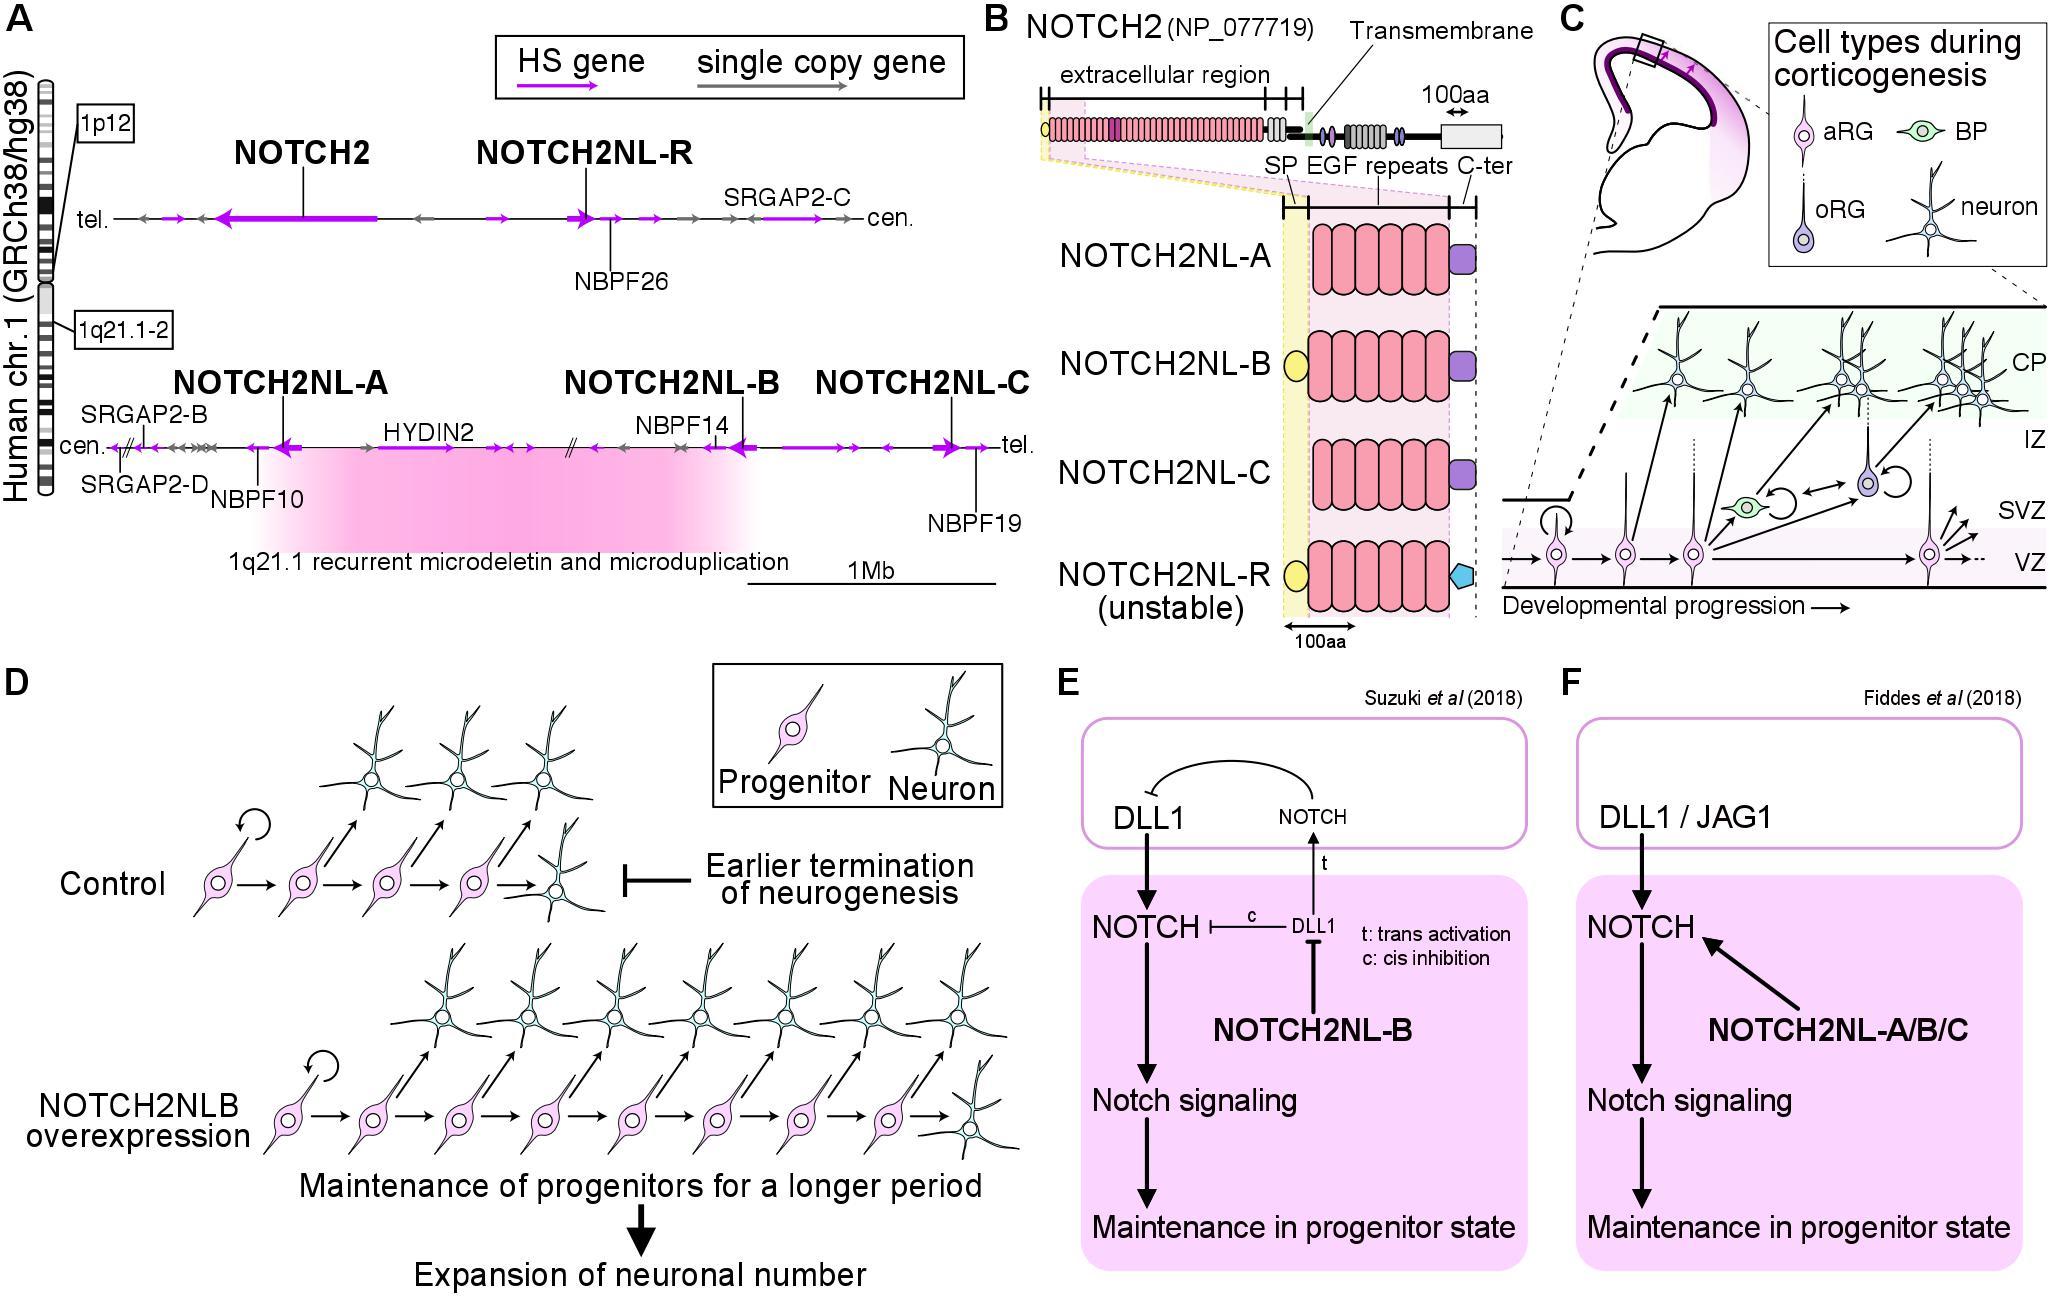 Figure 1. (A) Genomic positions of NOTCH2NL-family genes and other human/hominid lineage-specific duplicated genes in 1p12 and 1q21. (B) Protein structures of NOTCH2NL-family genes. (C) Major cell types during corticogenesis. NOTCH2NL is heavily expressed in the VZ harboring the aRG and sparsely detected in the outer SVZ containing the oRG. (D) Proposed mechanisms of action of NOTCH2NL-B in cortical neurogenesis; NOTCH2NL-B keeps cortical progenitors for a longer period and it thus elongate the duration of neurogenesis. (E, F) Proposed molecular function of NOTCH2NL in human cortical progenitors. Suzuki et al (2018) demonstrated that NOTCH2NL-B inhibits a Notch ligand DLL1 and its suppressive action on DLL1 increases Notch signal input cell-autonomously (E). Fiddes et al (2018) showed that NOTCH2NL proteins bind to and activate Notch receptors (F). HS genes, human/hominid-specific genes; SP, signal peptide; aRG, apical radial glia; BP, basal progenitor; oRG, outer radial glia; VZ, ventricular zone; SVZ, subventricular zone; IZ, intermediate zone; CP, cortical plate.